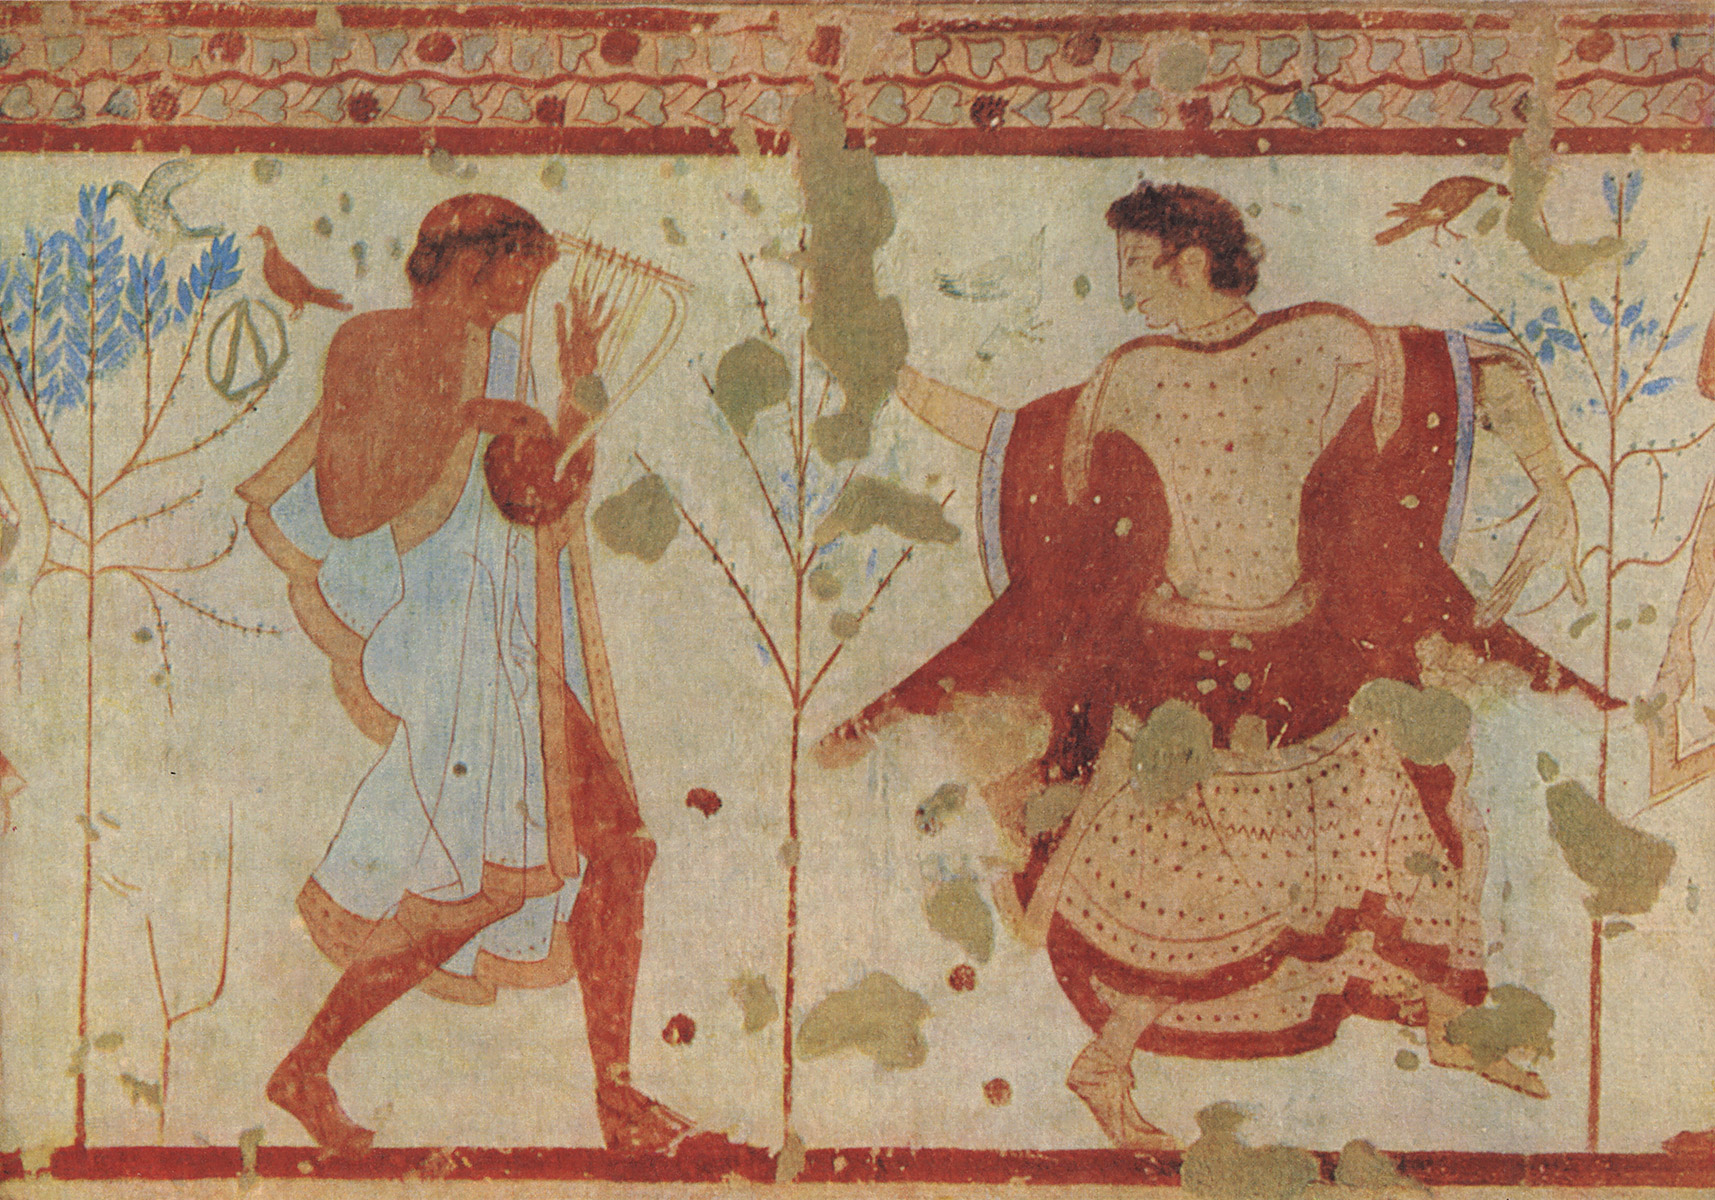 Dancer and lyre player. 5th century BCE. Tarquinia, Tomb of the Triclinium